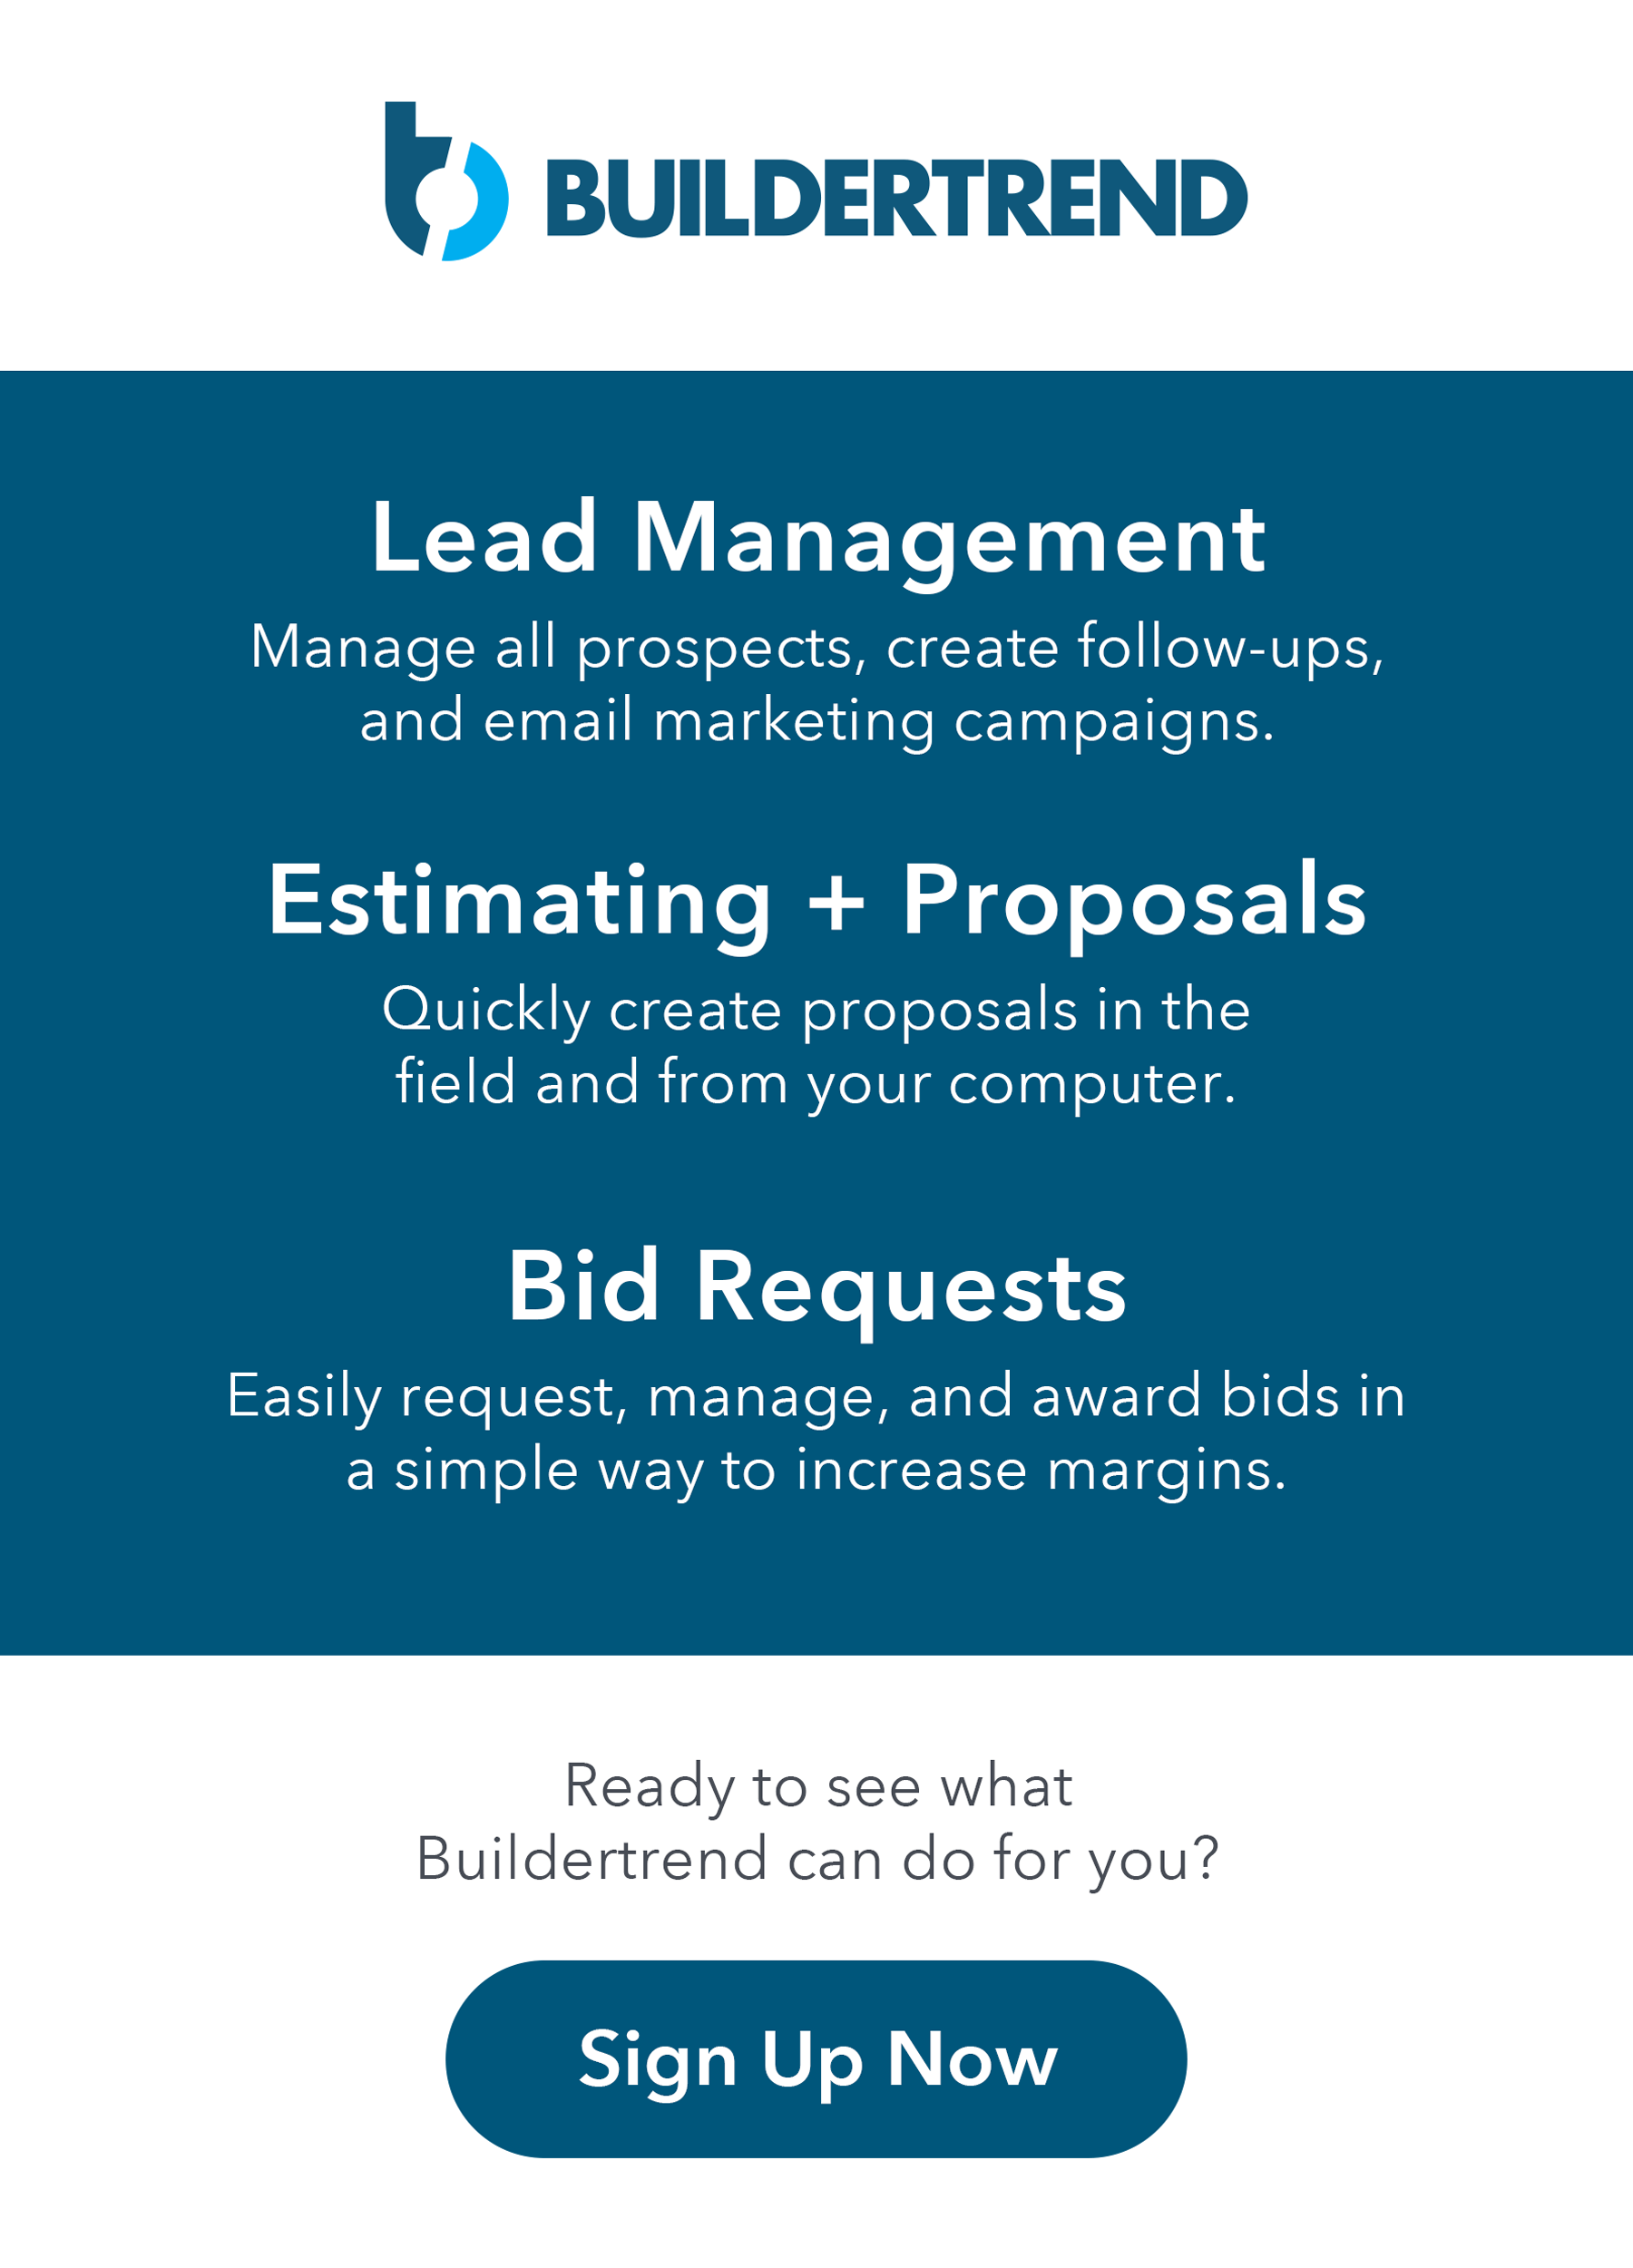 lead management - estimating and proposals - bid requests - sign up now